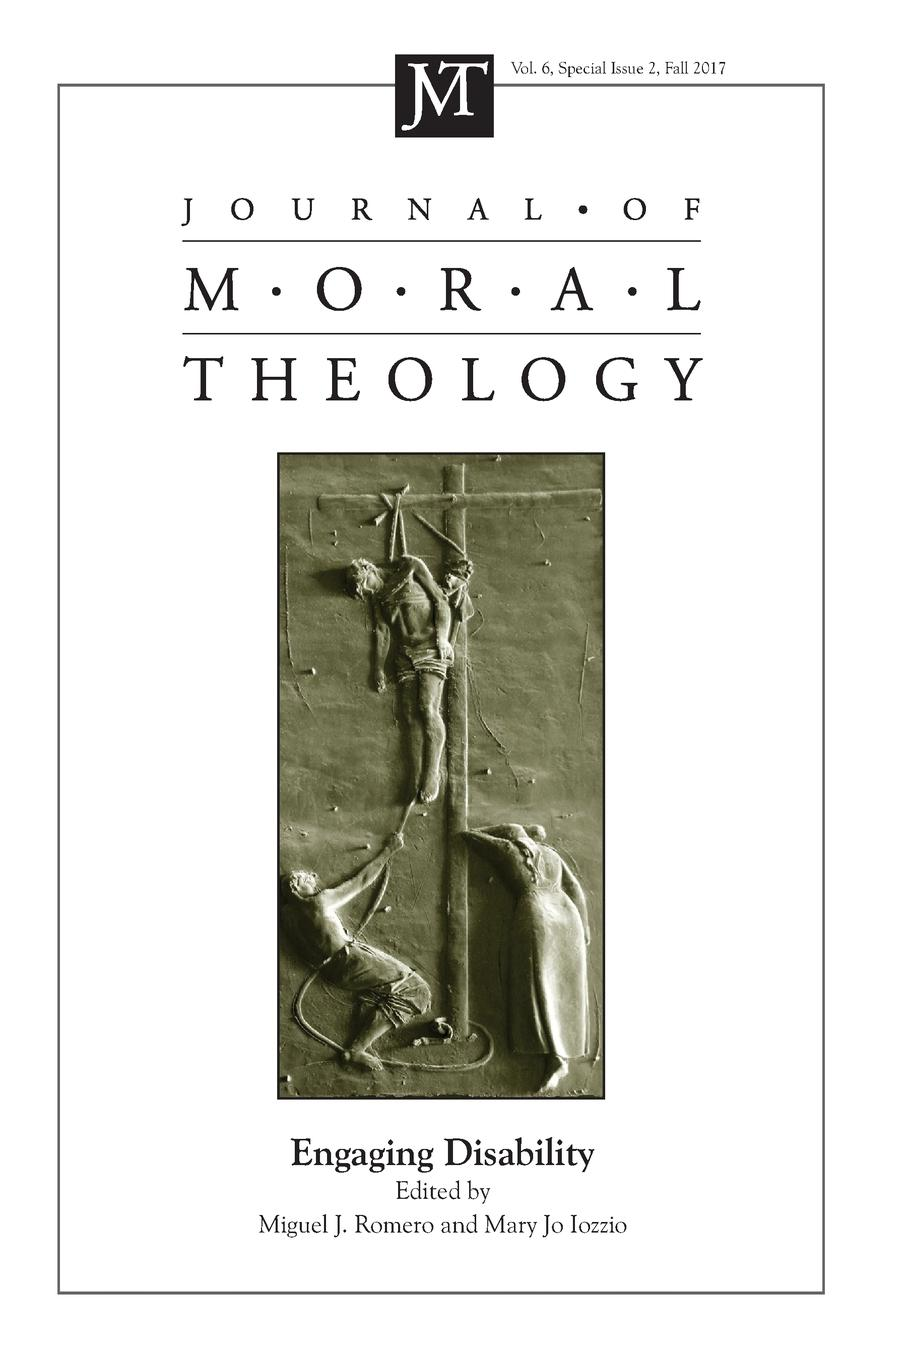 Journal of Moral Theology, Volume 6, Special Issue 2 carlson licia cognitive disability and its challenge to moral philosophy